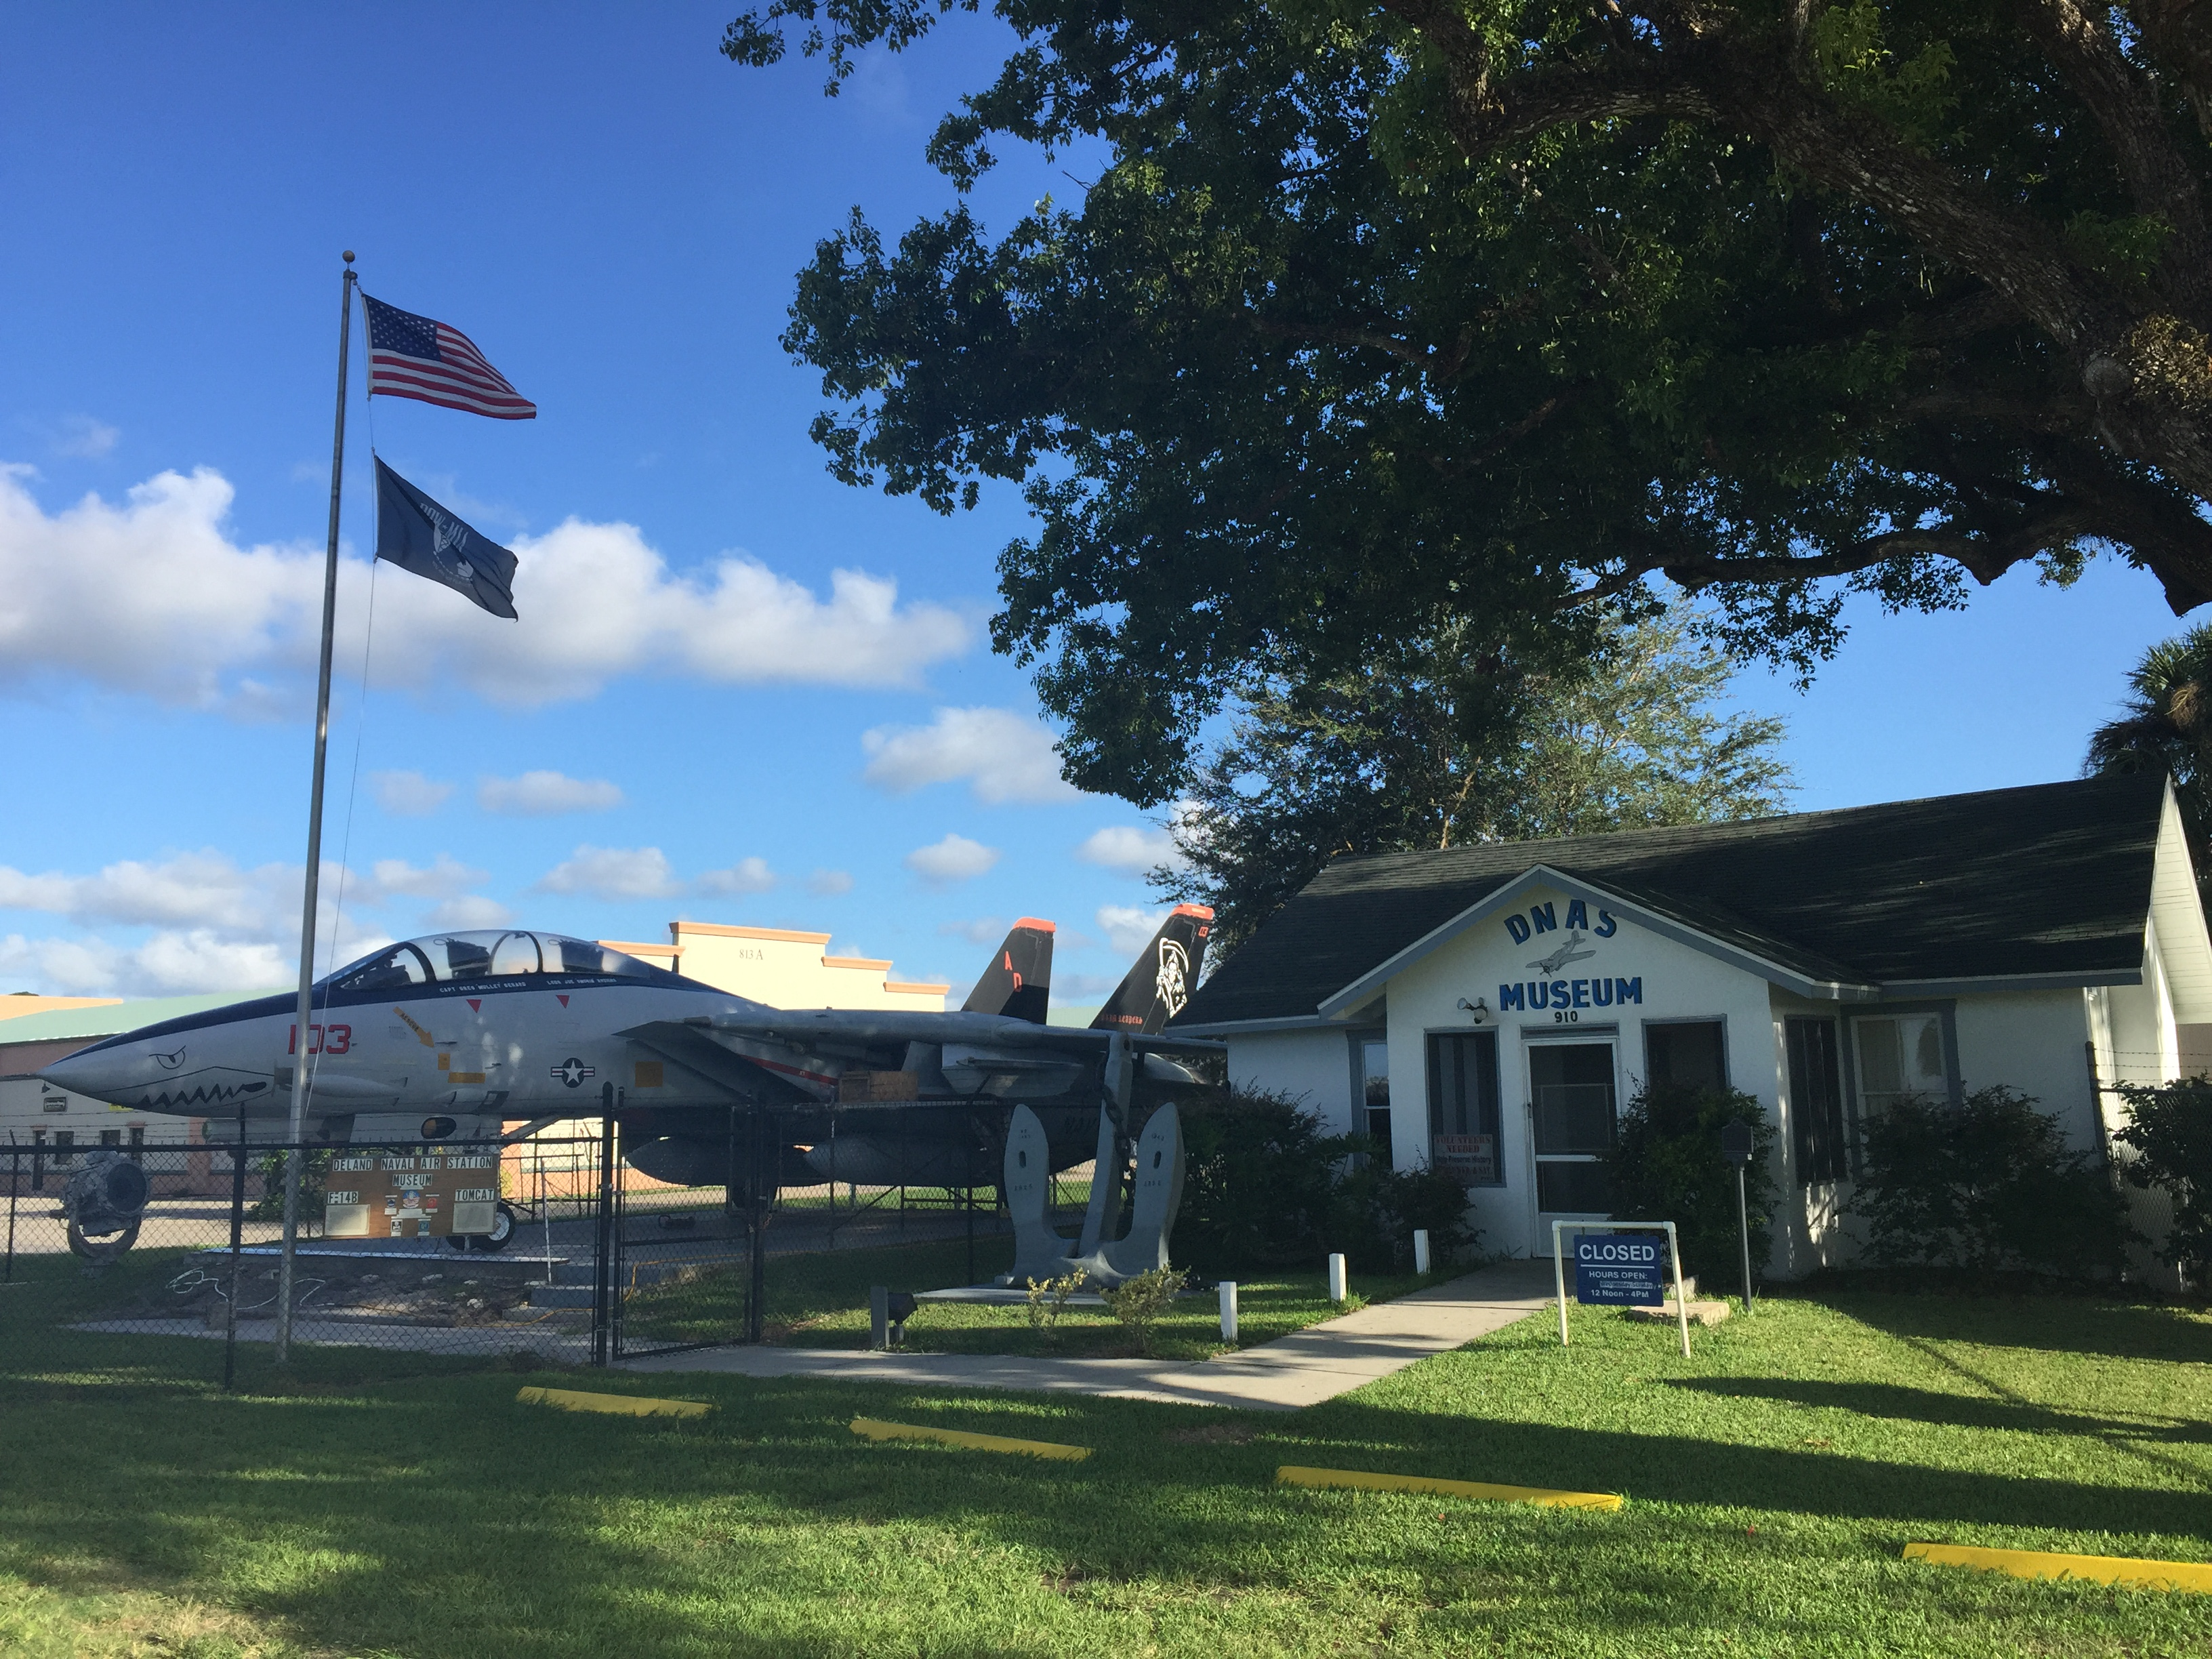 DeLand Naval Air Station museum is located in the former Master of Arms residence, which is listed on the National Register of Historic Places.